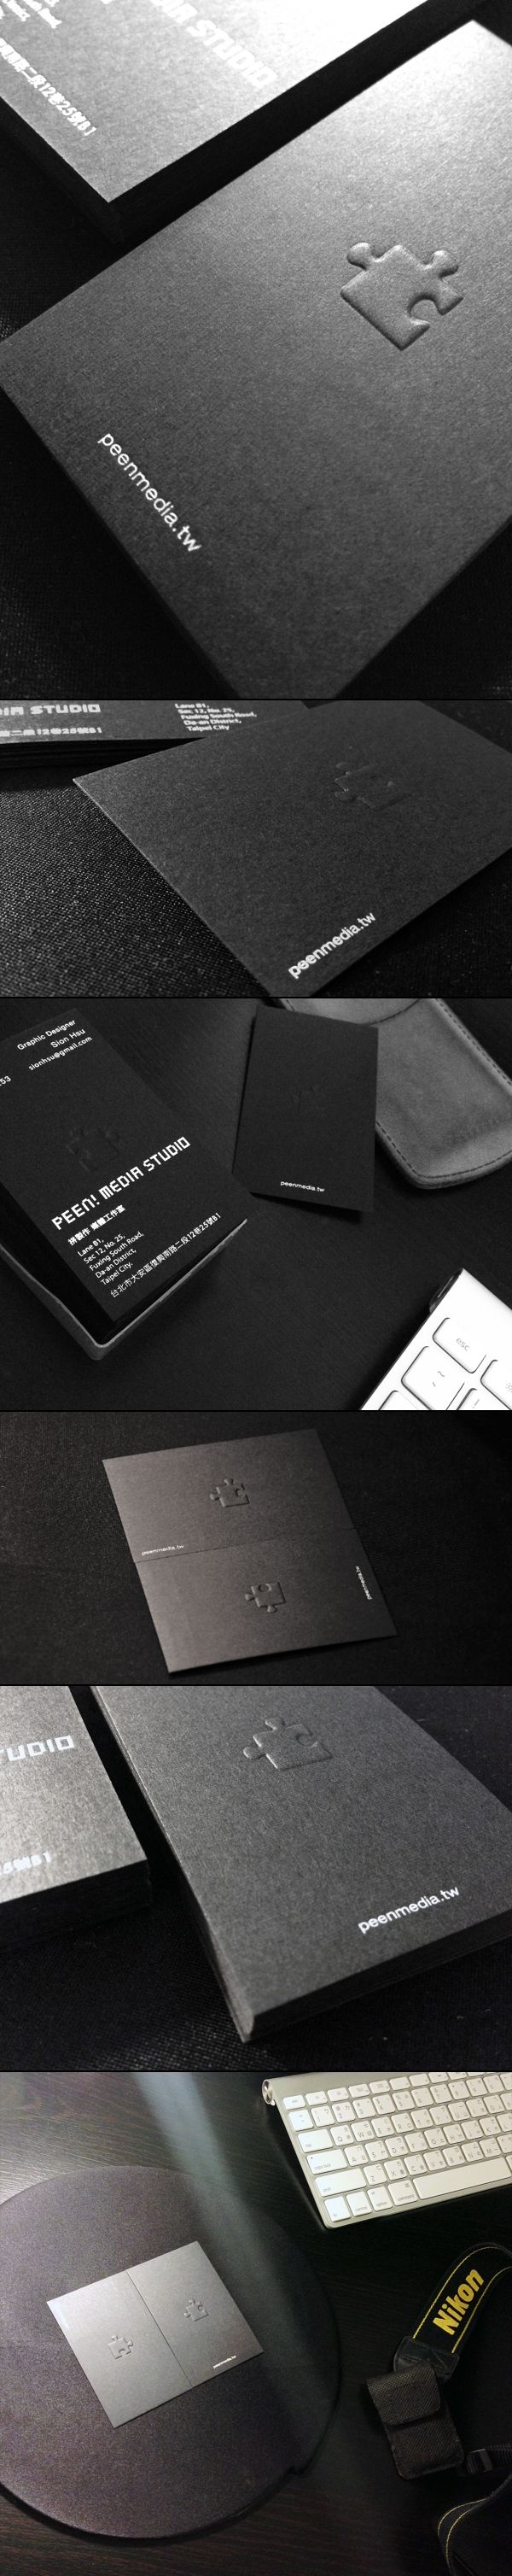 157 best Business Cards images on Pinterest | Business cards ...